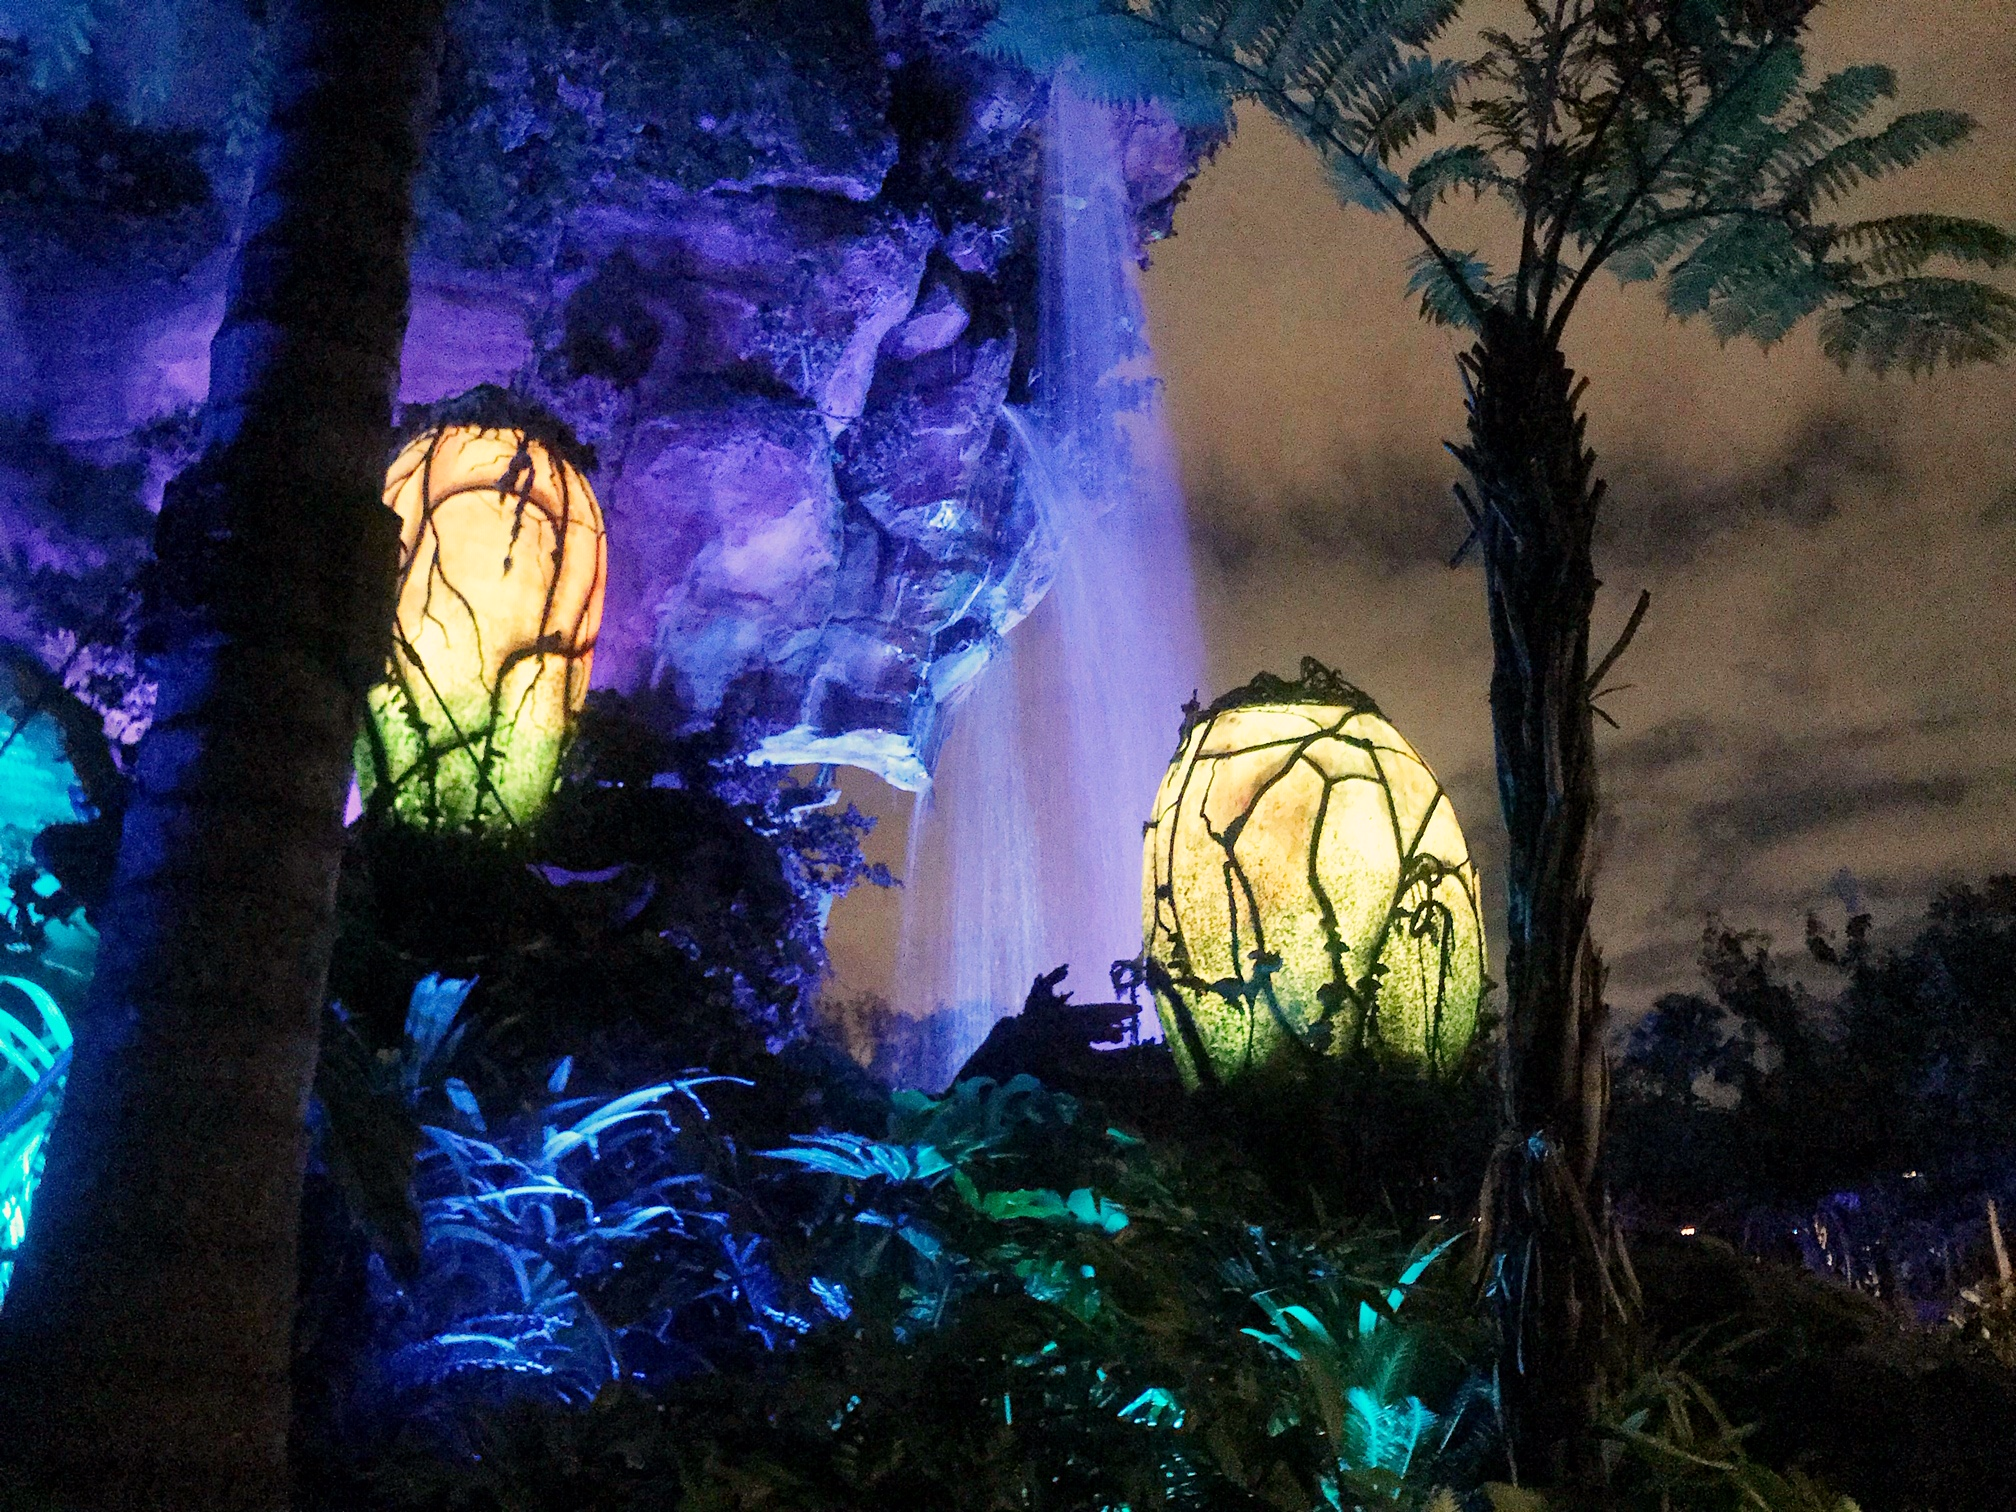 Pandora bioluminescent lights, #VisitPandora